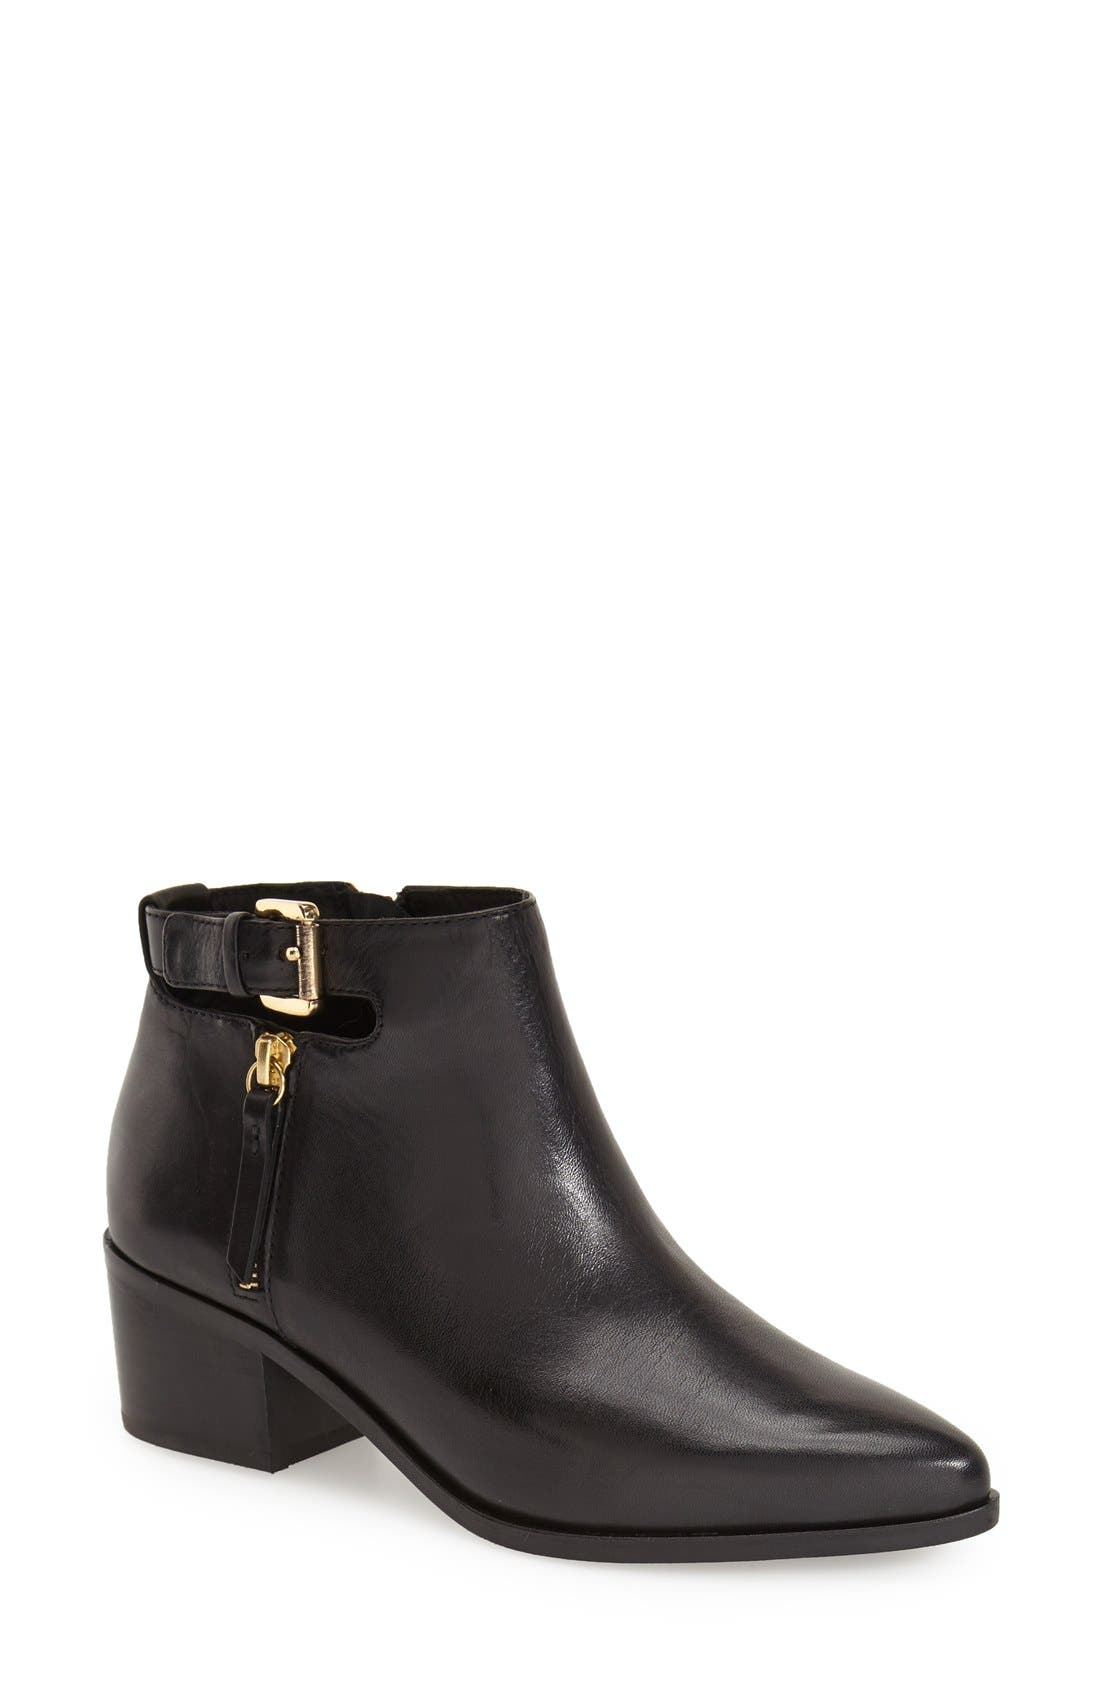 GEOX 'Lia' Ankle Boot, Main, color, 001